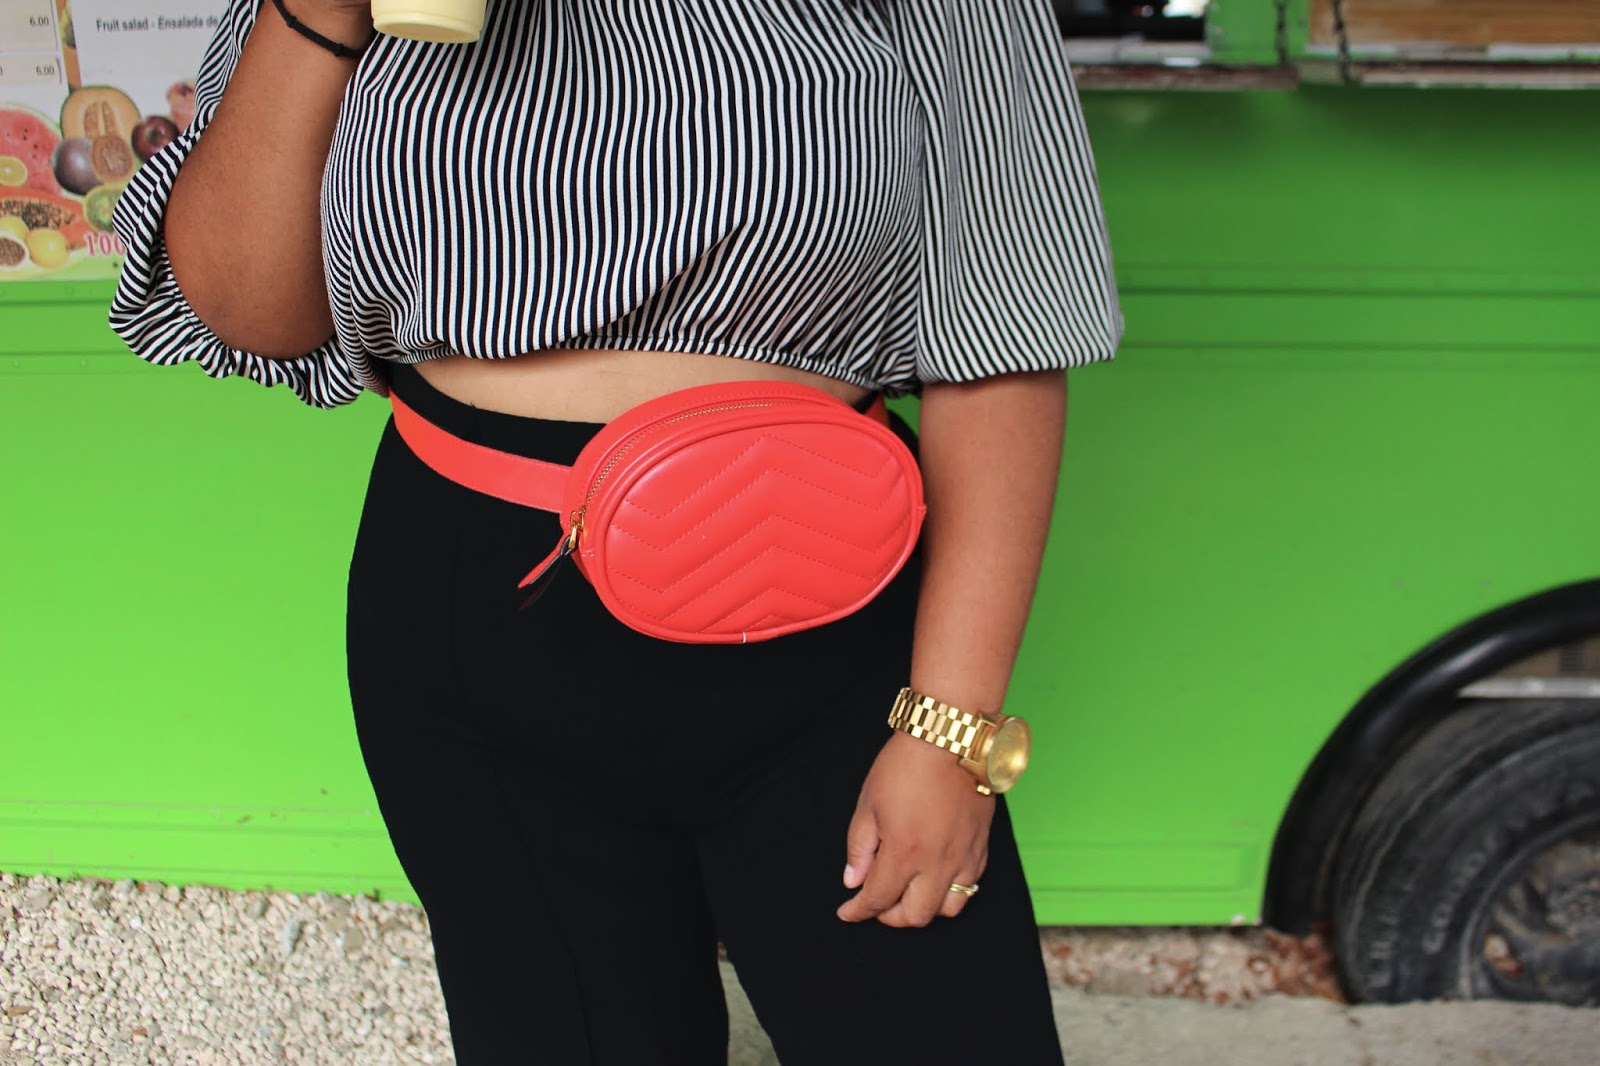 fanny pack, shana, high waist, plus size blogger, fashion, curacao, styling, summer style